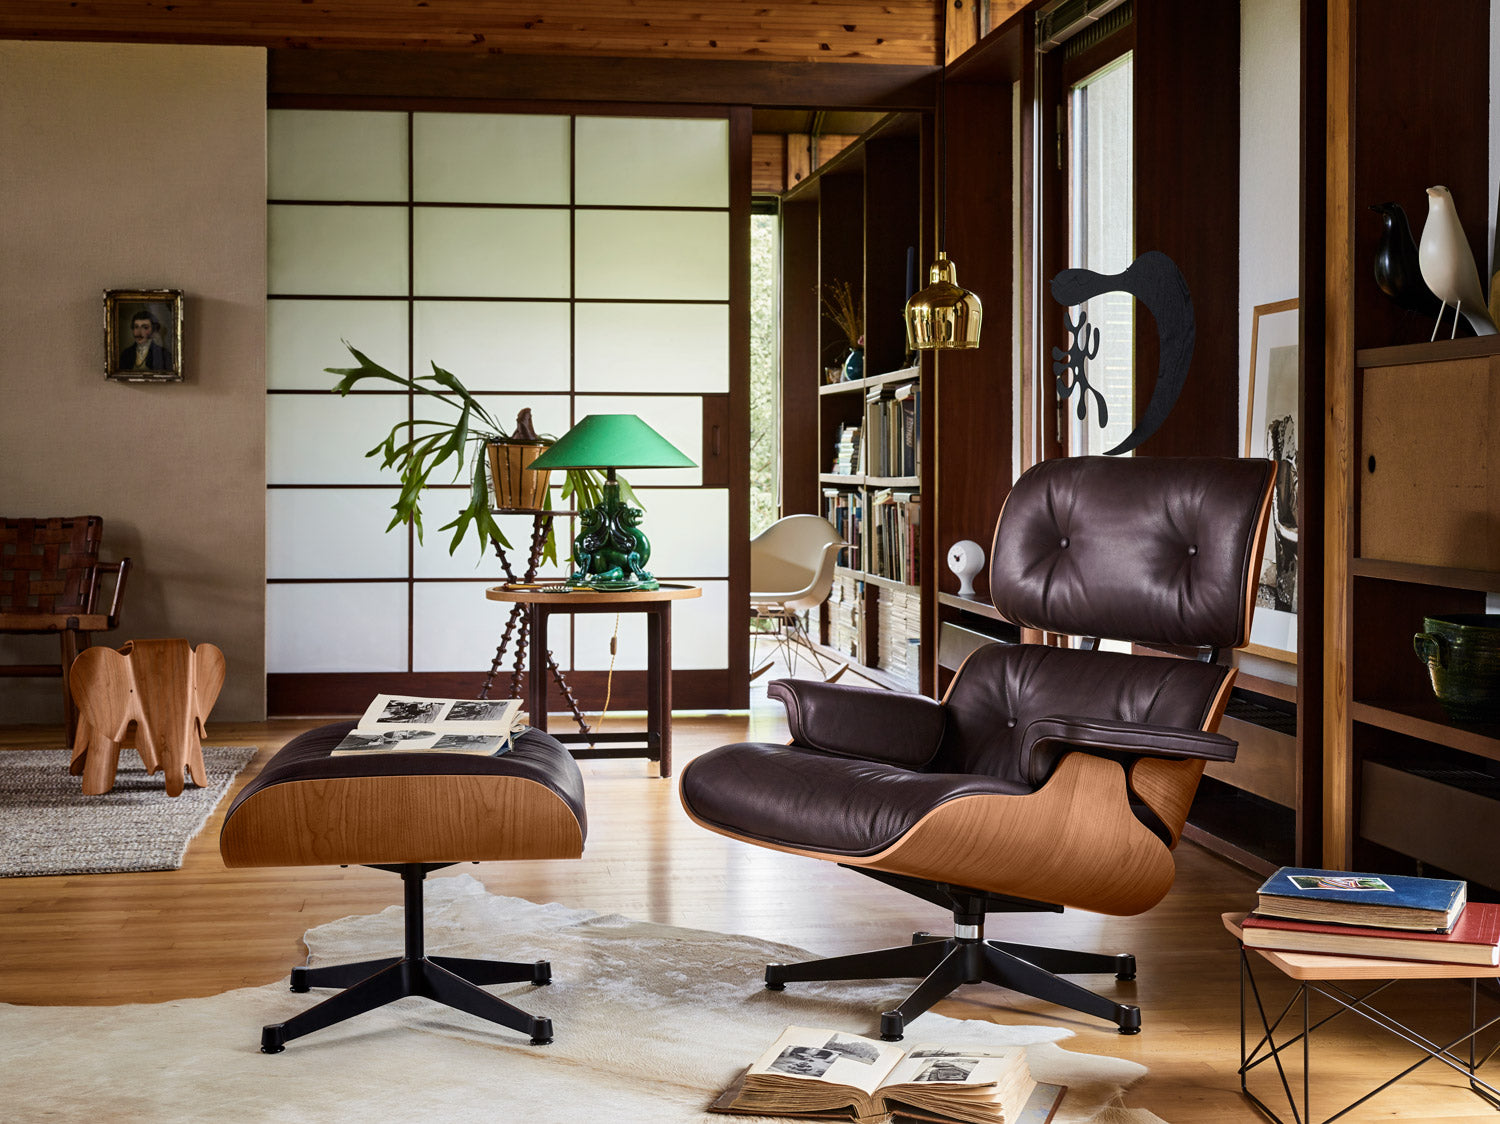 Eames Lounge Chair.Eames Lounge Chair American Cherry